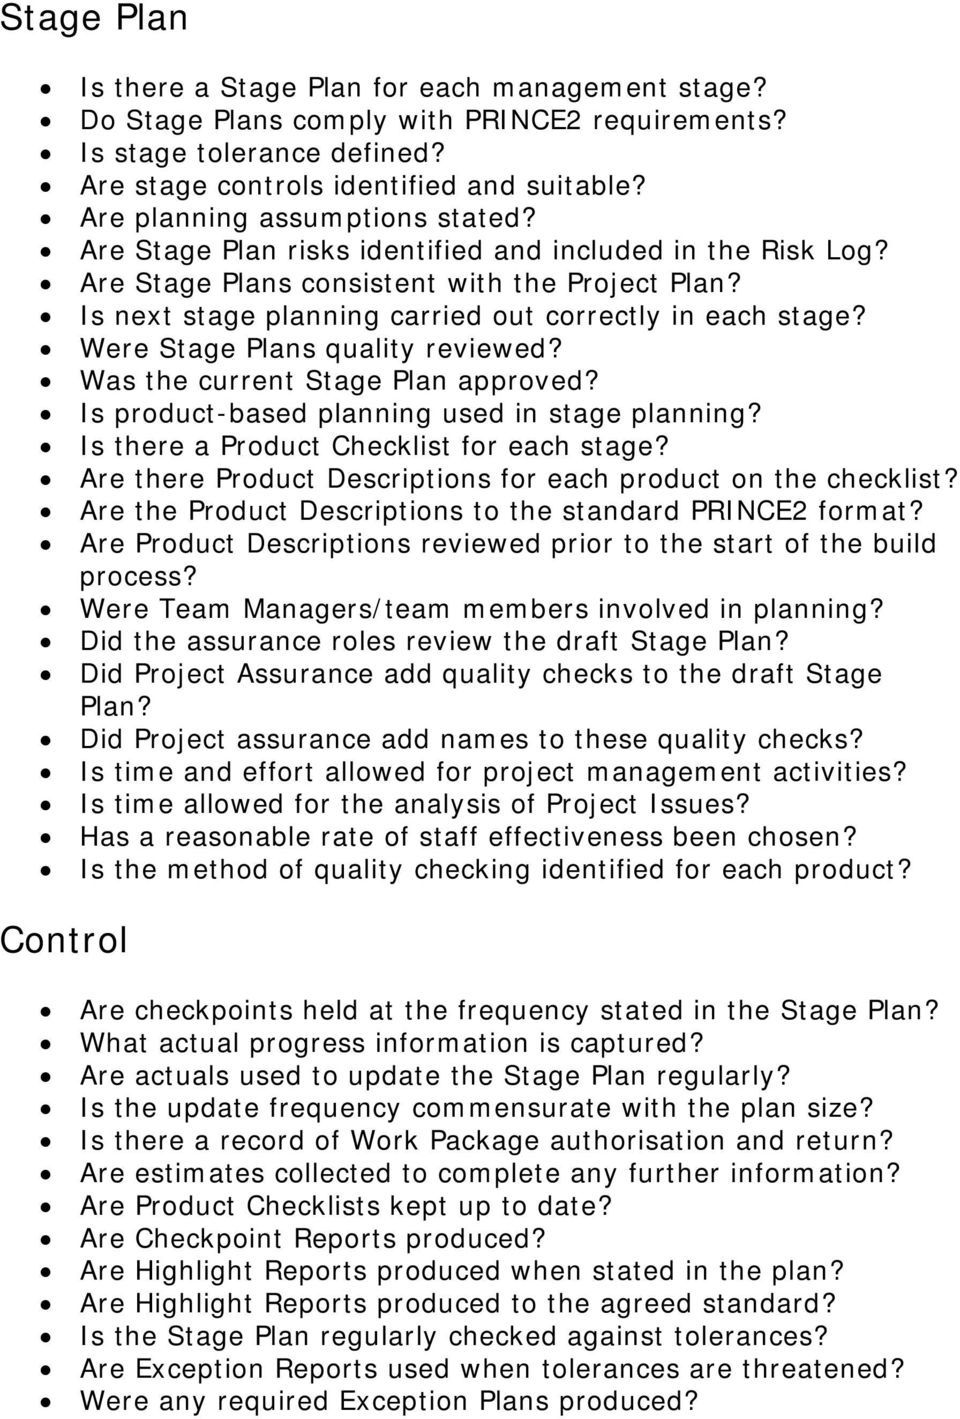 Is next stage planning carried out correctly in each stage? Were Stage Plans quality reviewed? Was the current Stage Plan approved? Is product-based planning used in stage planning?